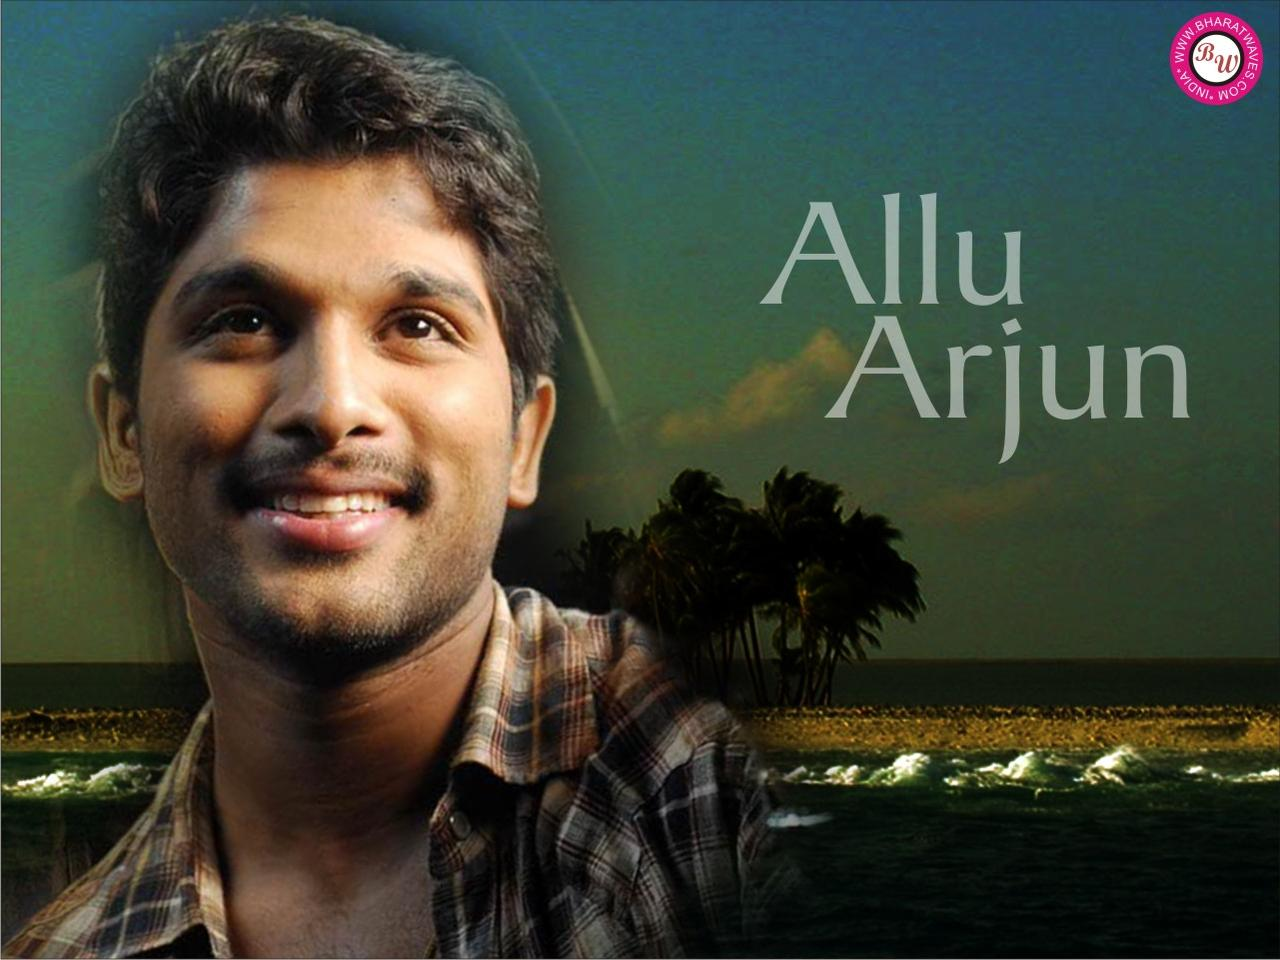 To download the Allu Arjun Photos just Right Click on the image and ...